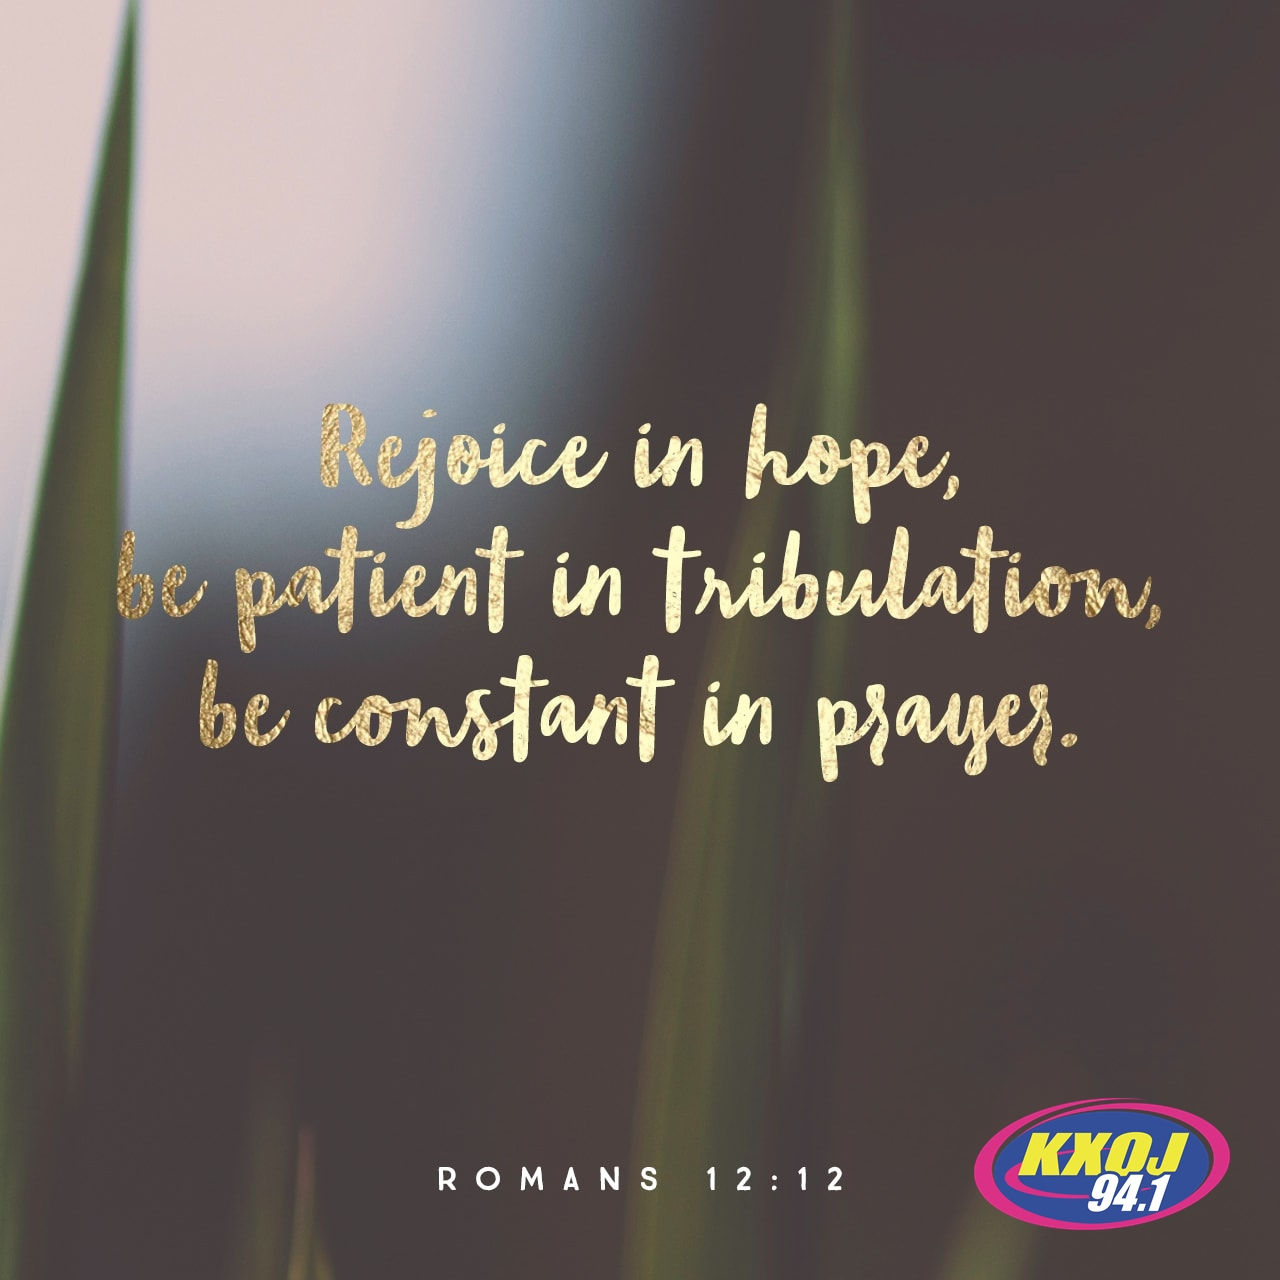 October 18th - Romans 12:12